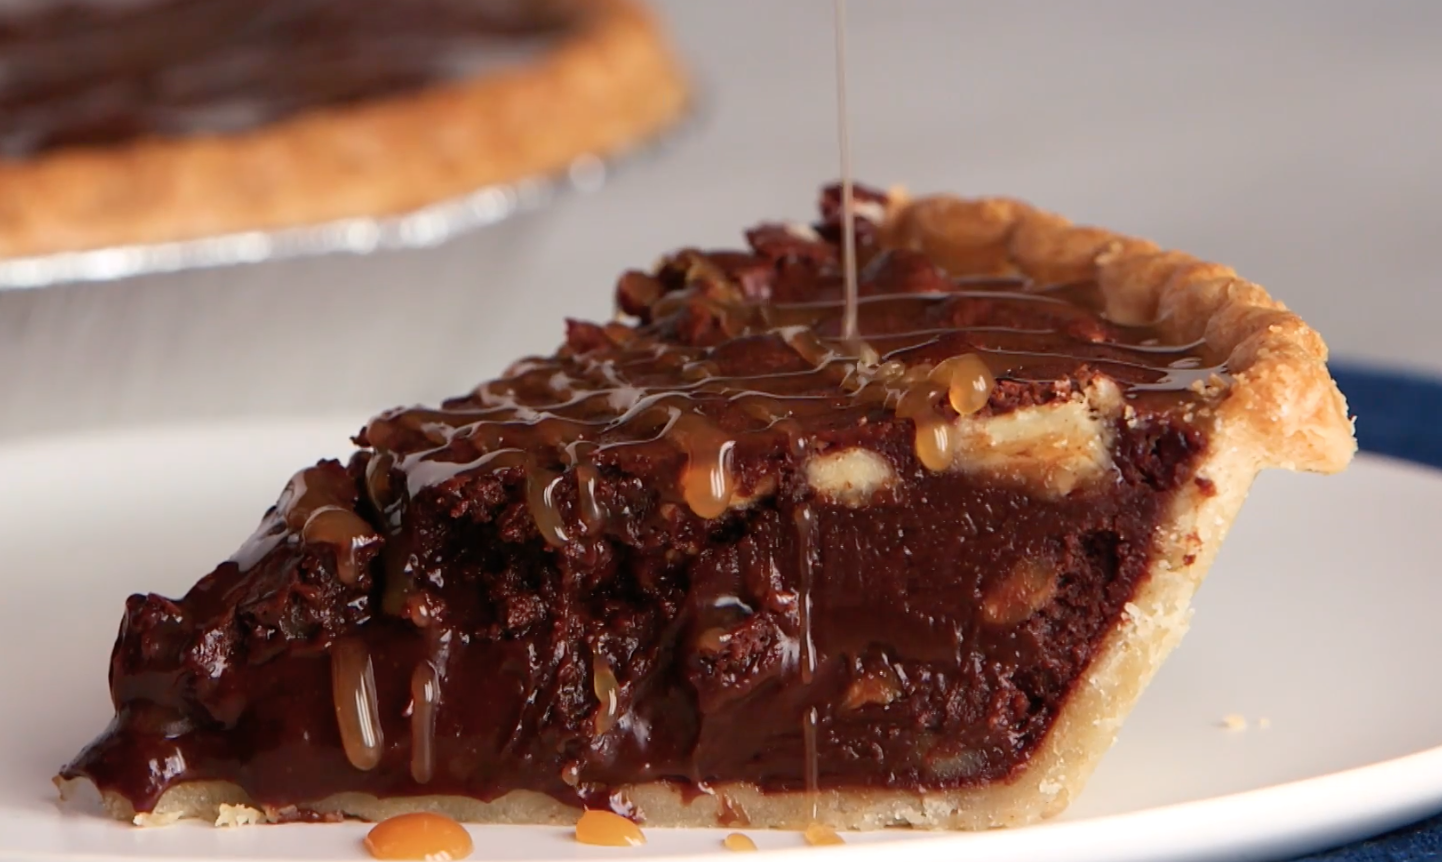 Disney Recipe: This Ghiradelli Fudge Pie Recipe Will Leave You Dreaming of Chocolate - AllEars.Net